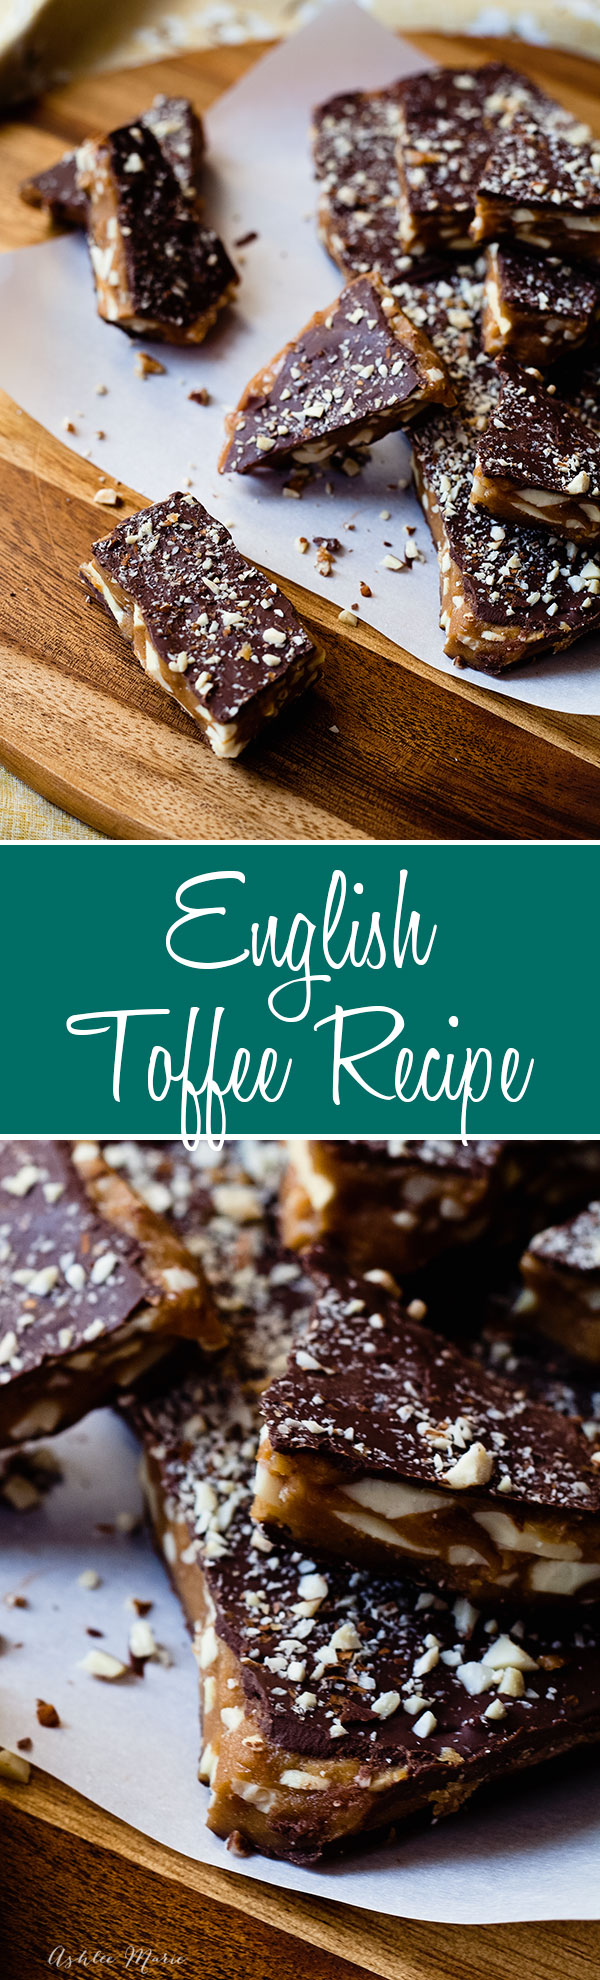 the perfect toffee recipe, you can make it thick or thin and top with your favorite chocolate